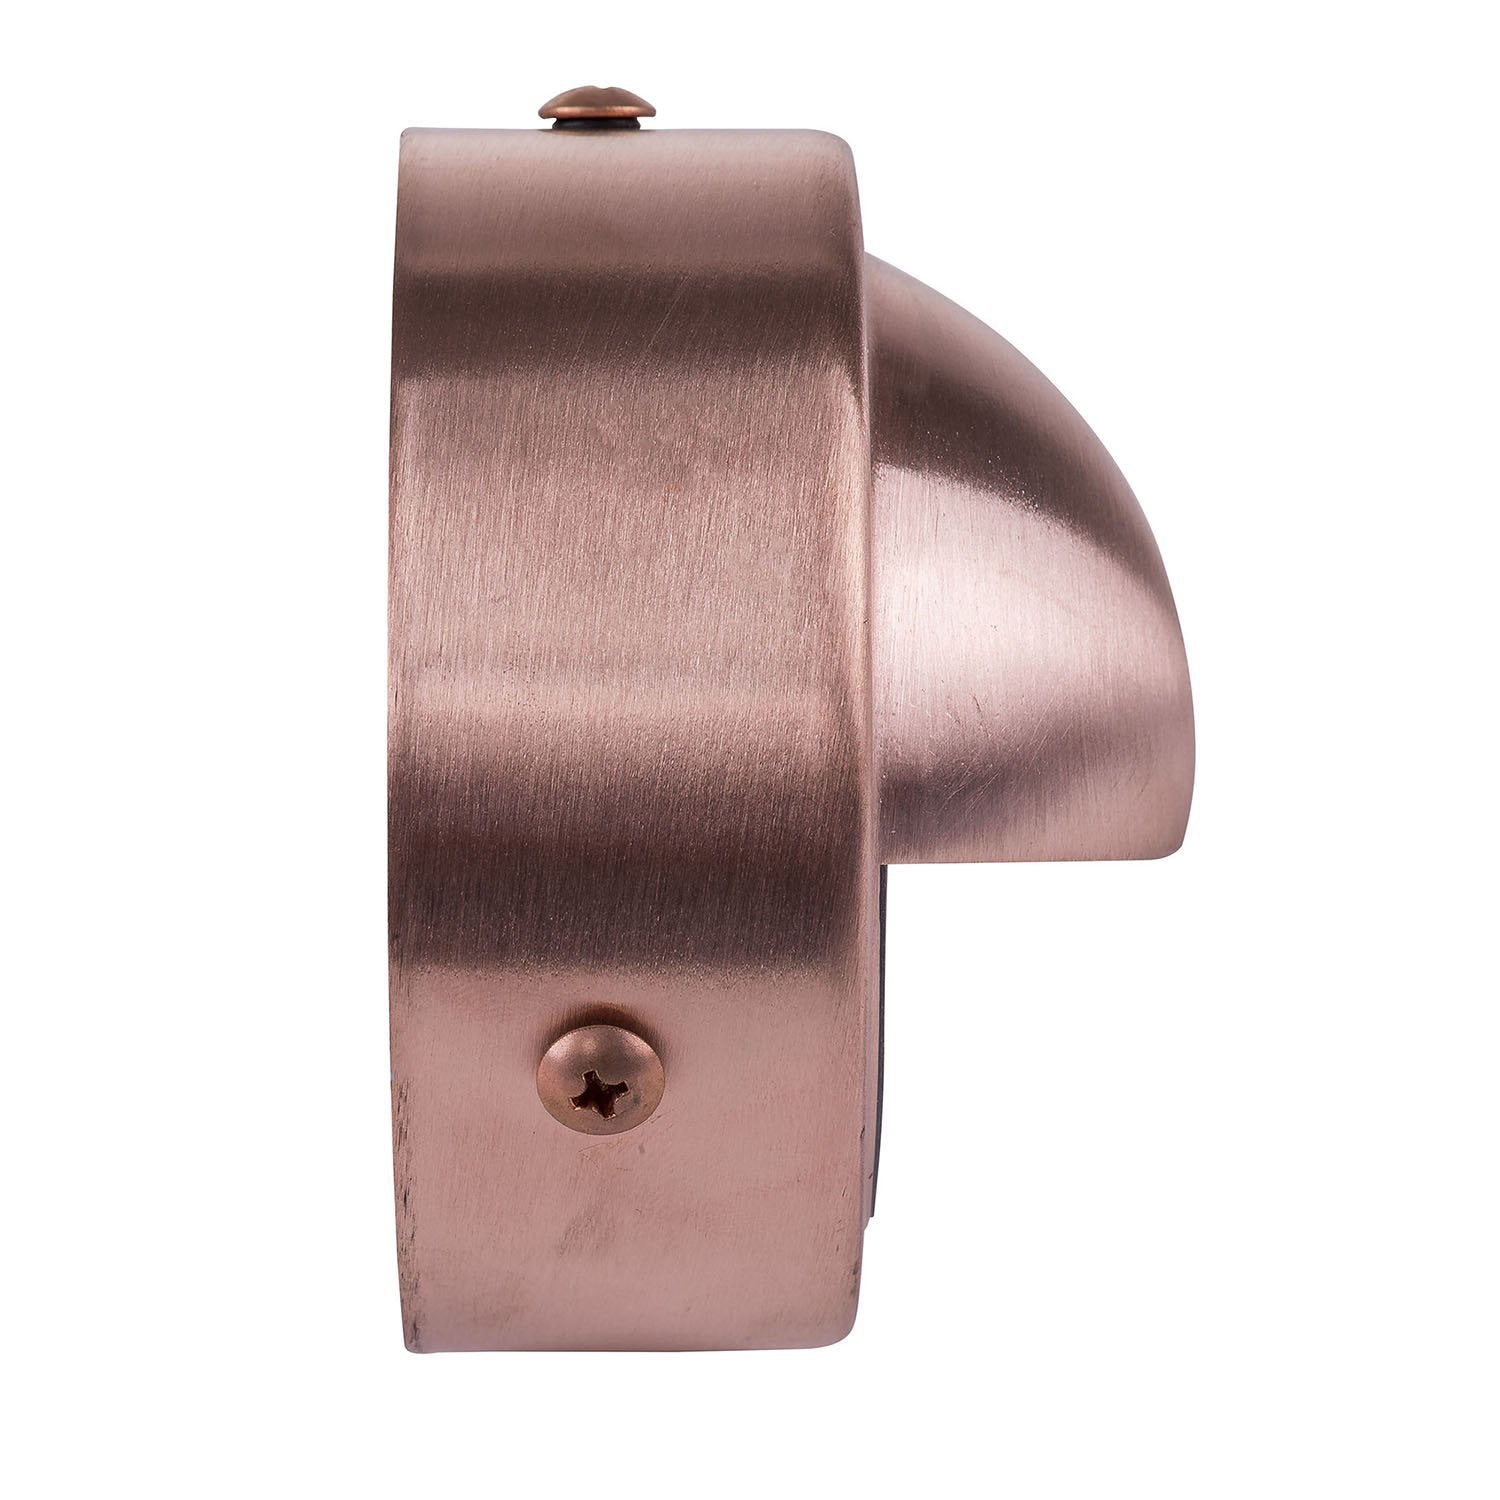 Pinta Eyelid Step Light - Copper